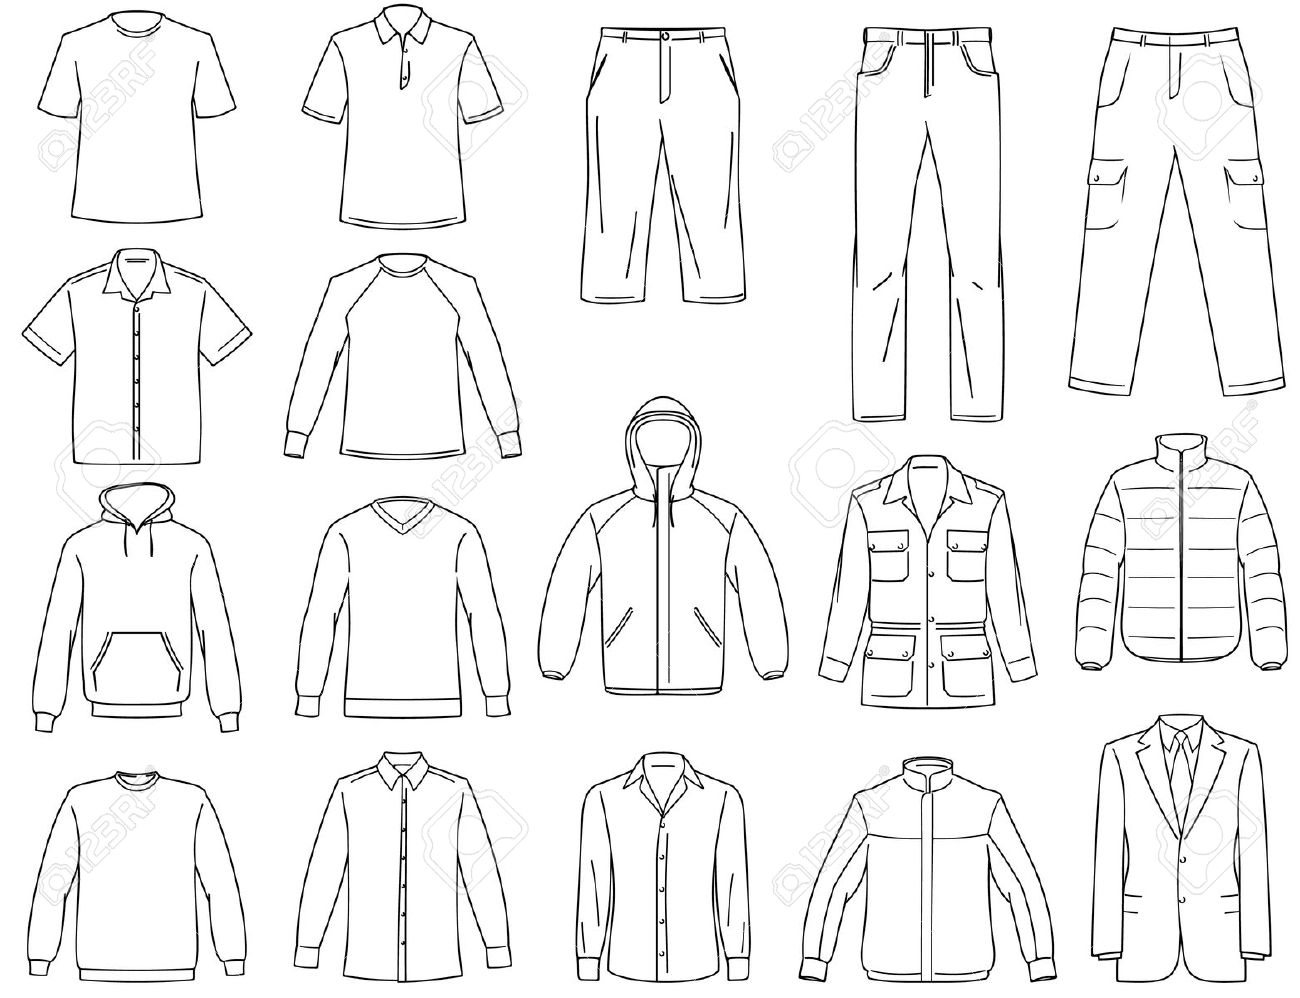 vector clothing templates at getdrawings free download